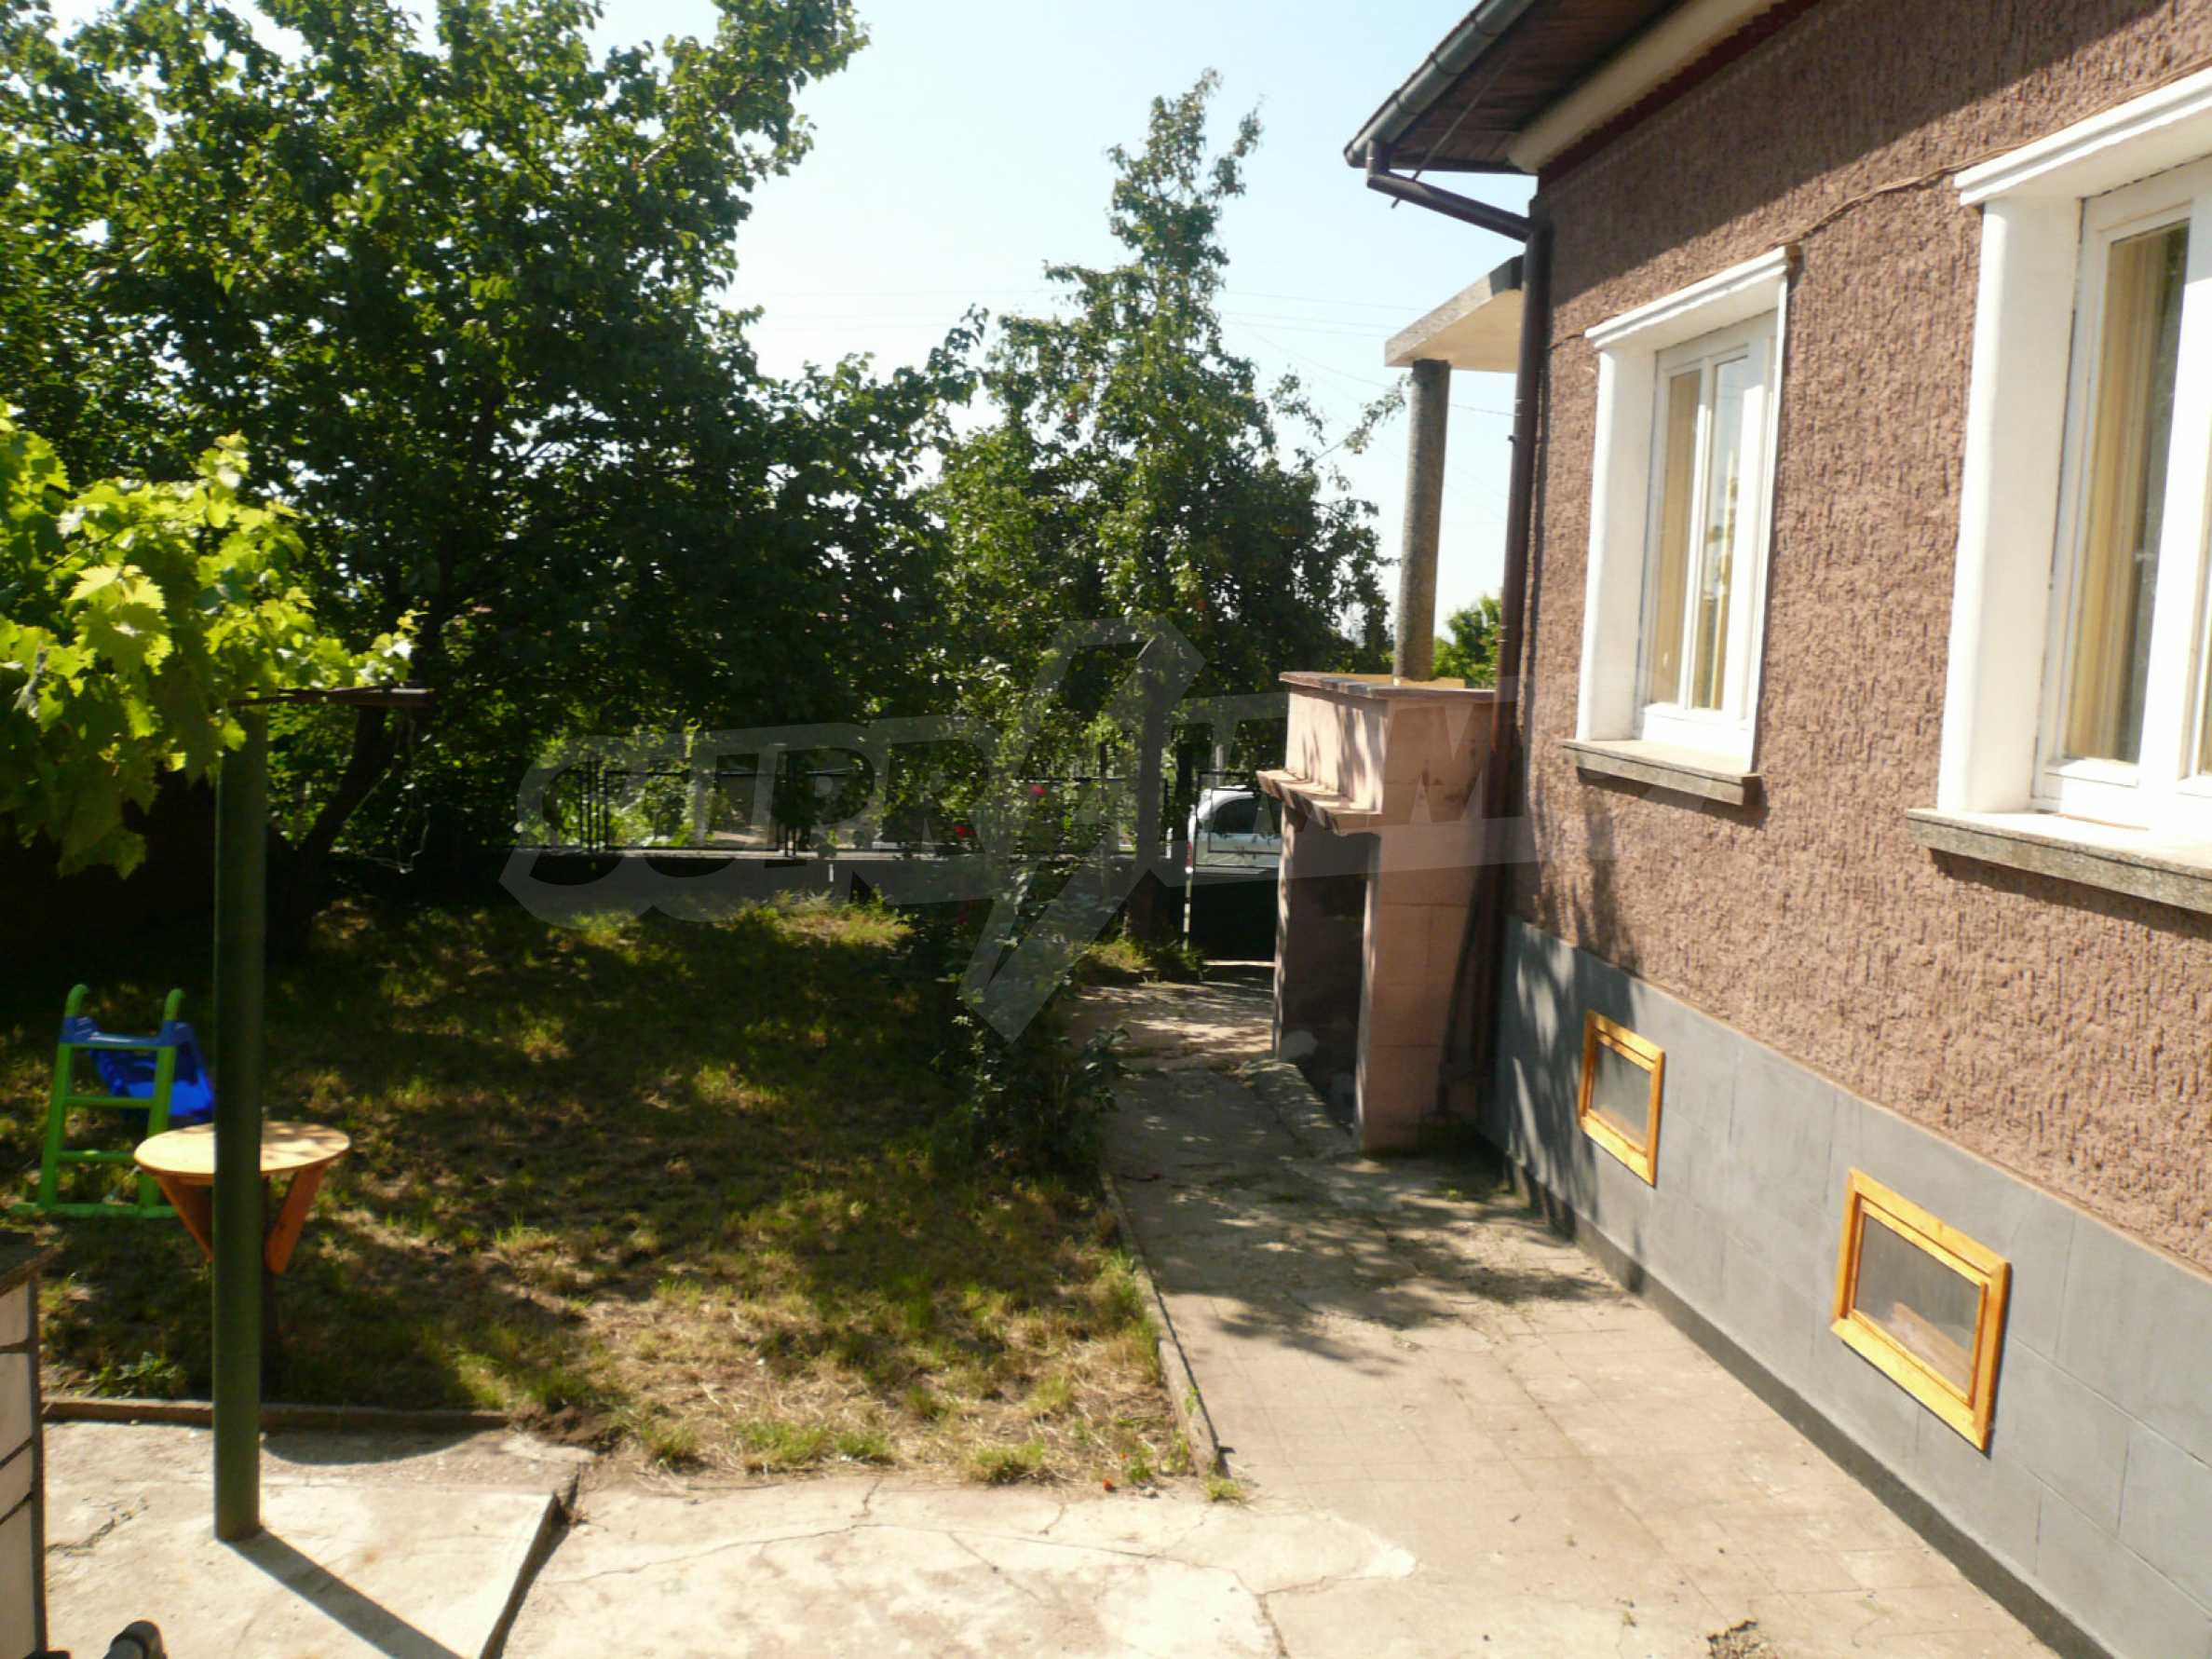 Rural houses with garden 12 km from Vidin 9